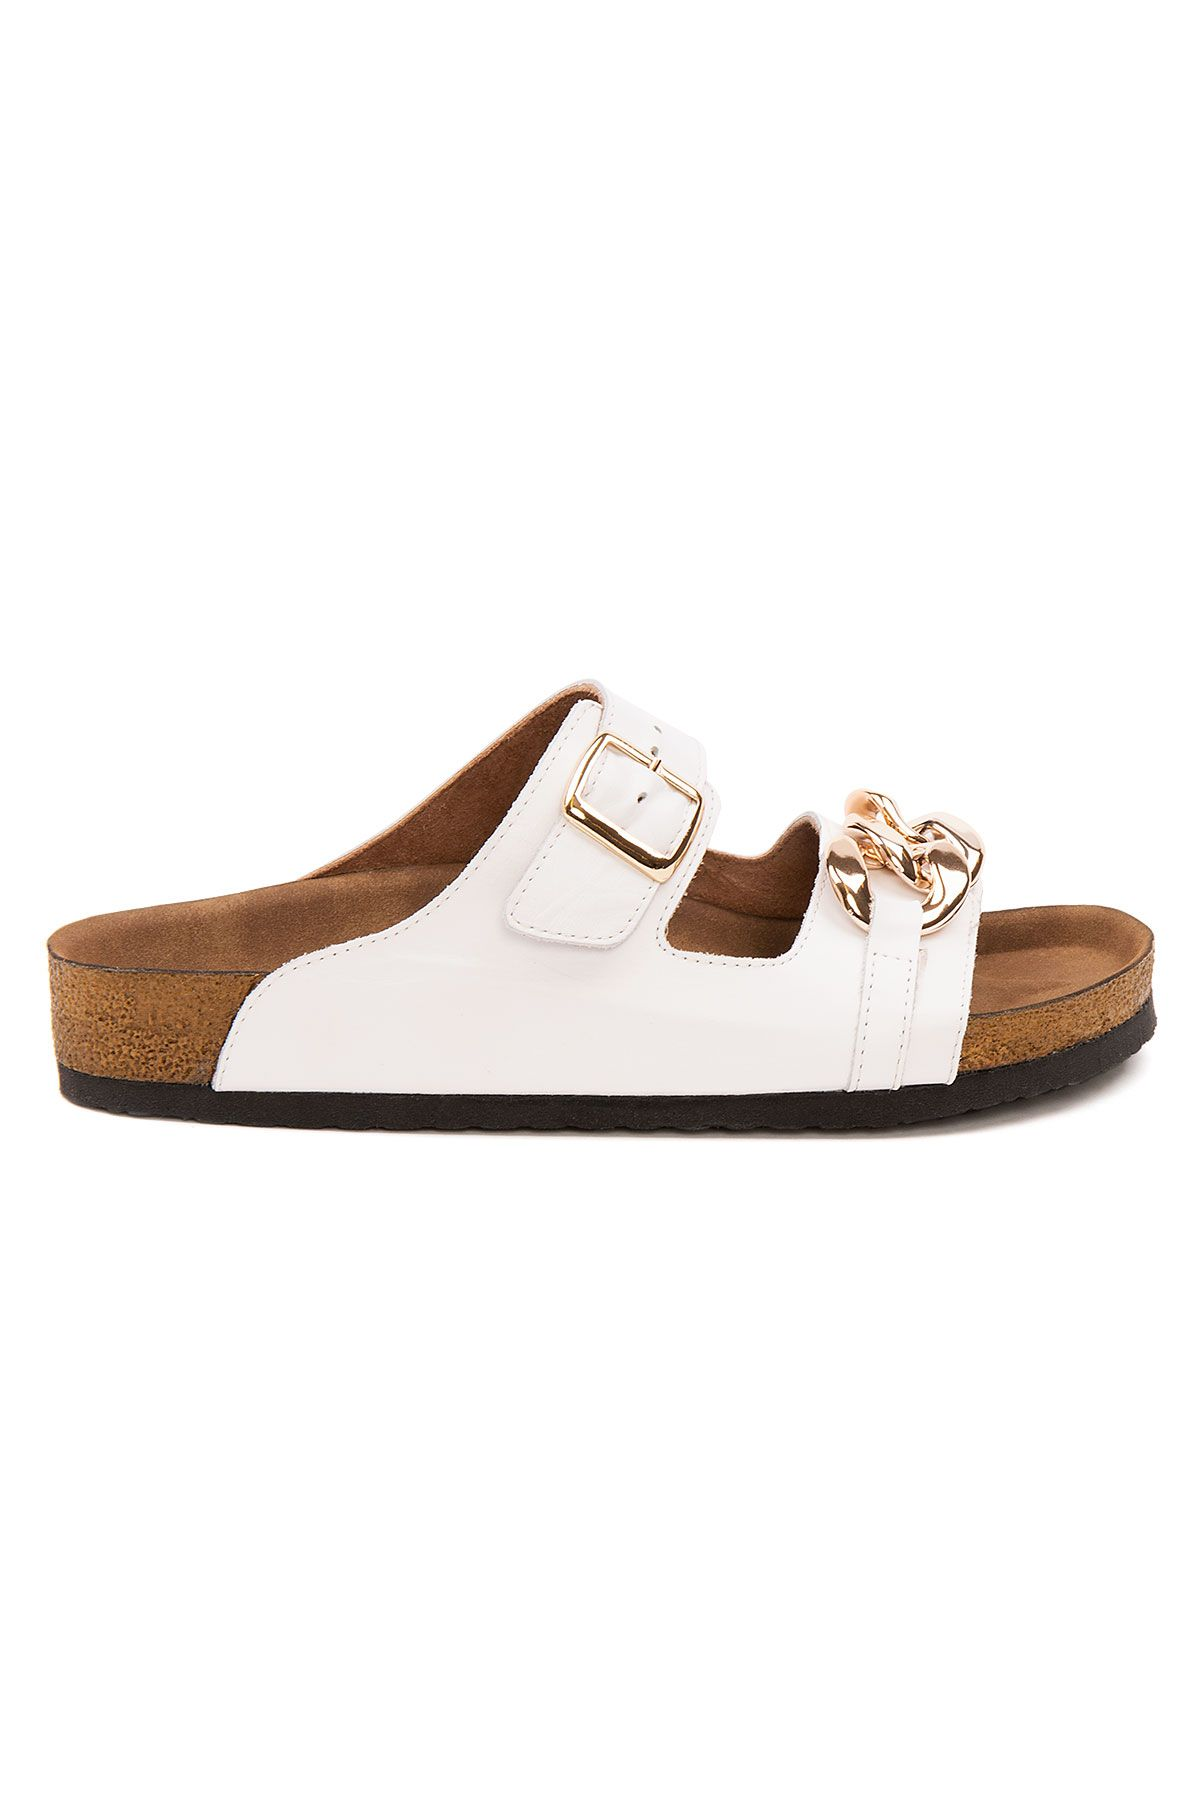 Pegia Women's Chain Detailed Leather Slippers 215532 White